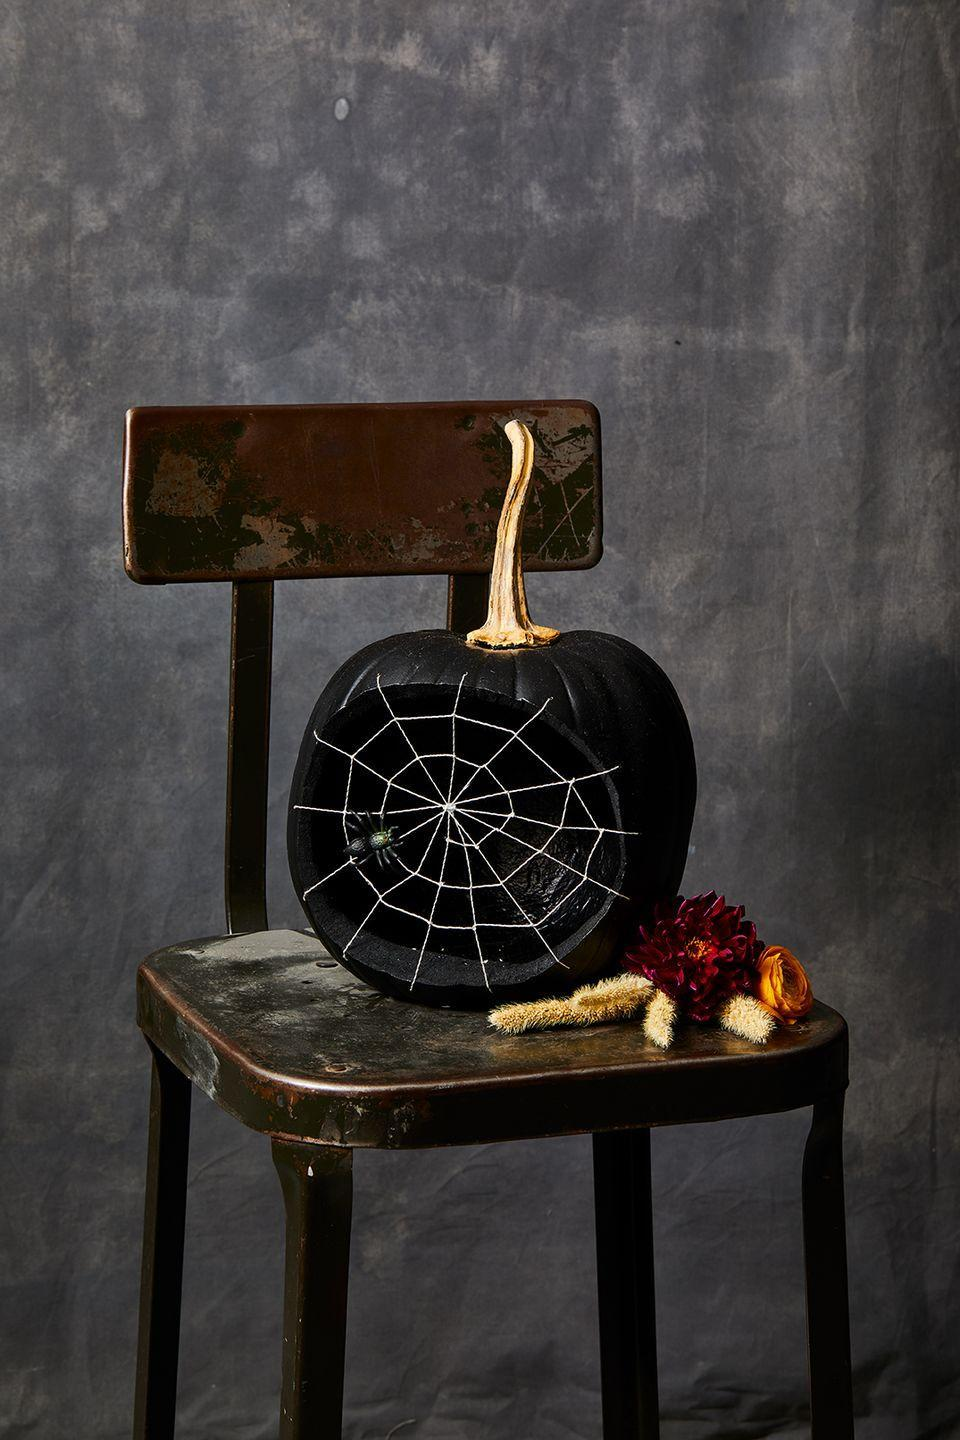 <p>This spooky spider pumpkin will look great on your front porch or anywhere in your house! Simply carve out a circle on the face of the pumpkin, spray paint it (inside and outside) black, and poke 12-13 holes along the edge where you carved. Then, thread a needle with a metallic string and tie a knot on the end. Start from the inside and pull the thread through the first hole, then through another hole directly across the pumpkin (poking the pumpkin from the outside) and tying it off inside. Repeat this step until you have all your holes filled. Take a length of string and start by tying it to one of the crisscrossed strings you just created about 1 inch from the outside of the hole. Continue making a spiral by knotting as you hit the crisscross that is already there, continuing in a circular swirl. For the final touch, add a spider to your web!</p>